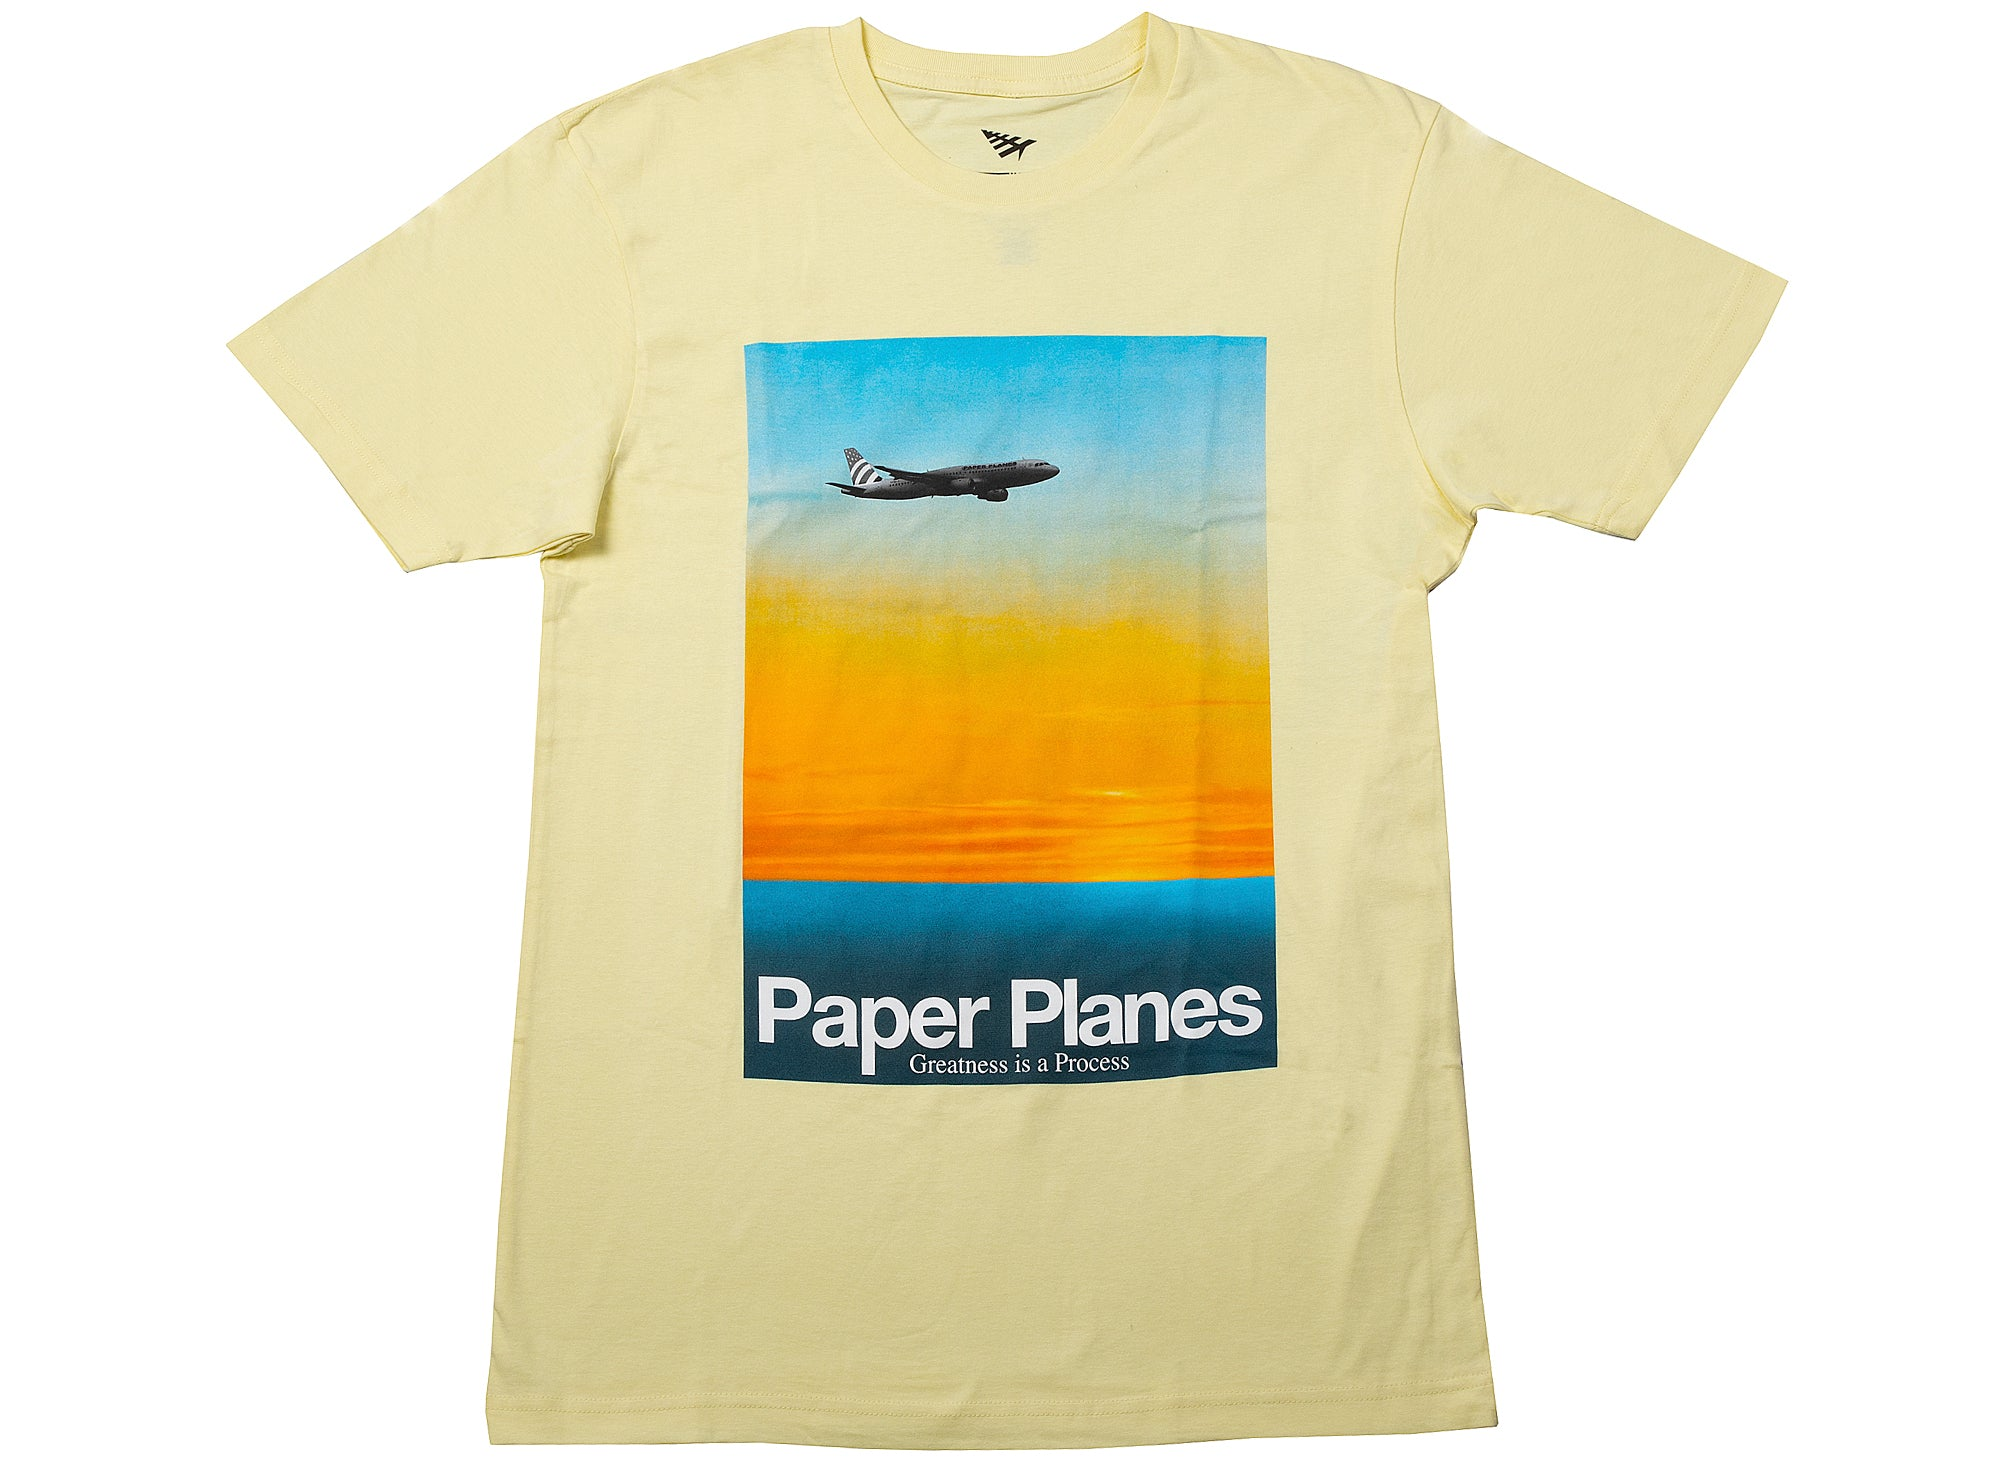 Paper Planes No Mosquitos Tee in Lemon xld